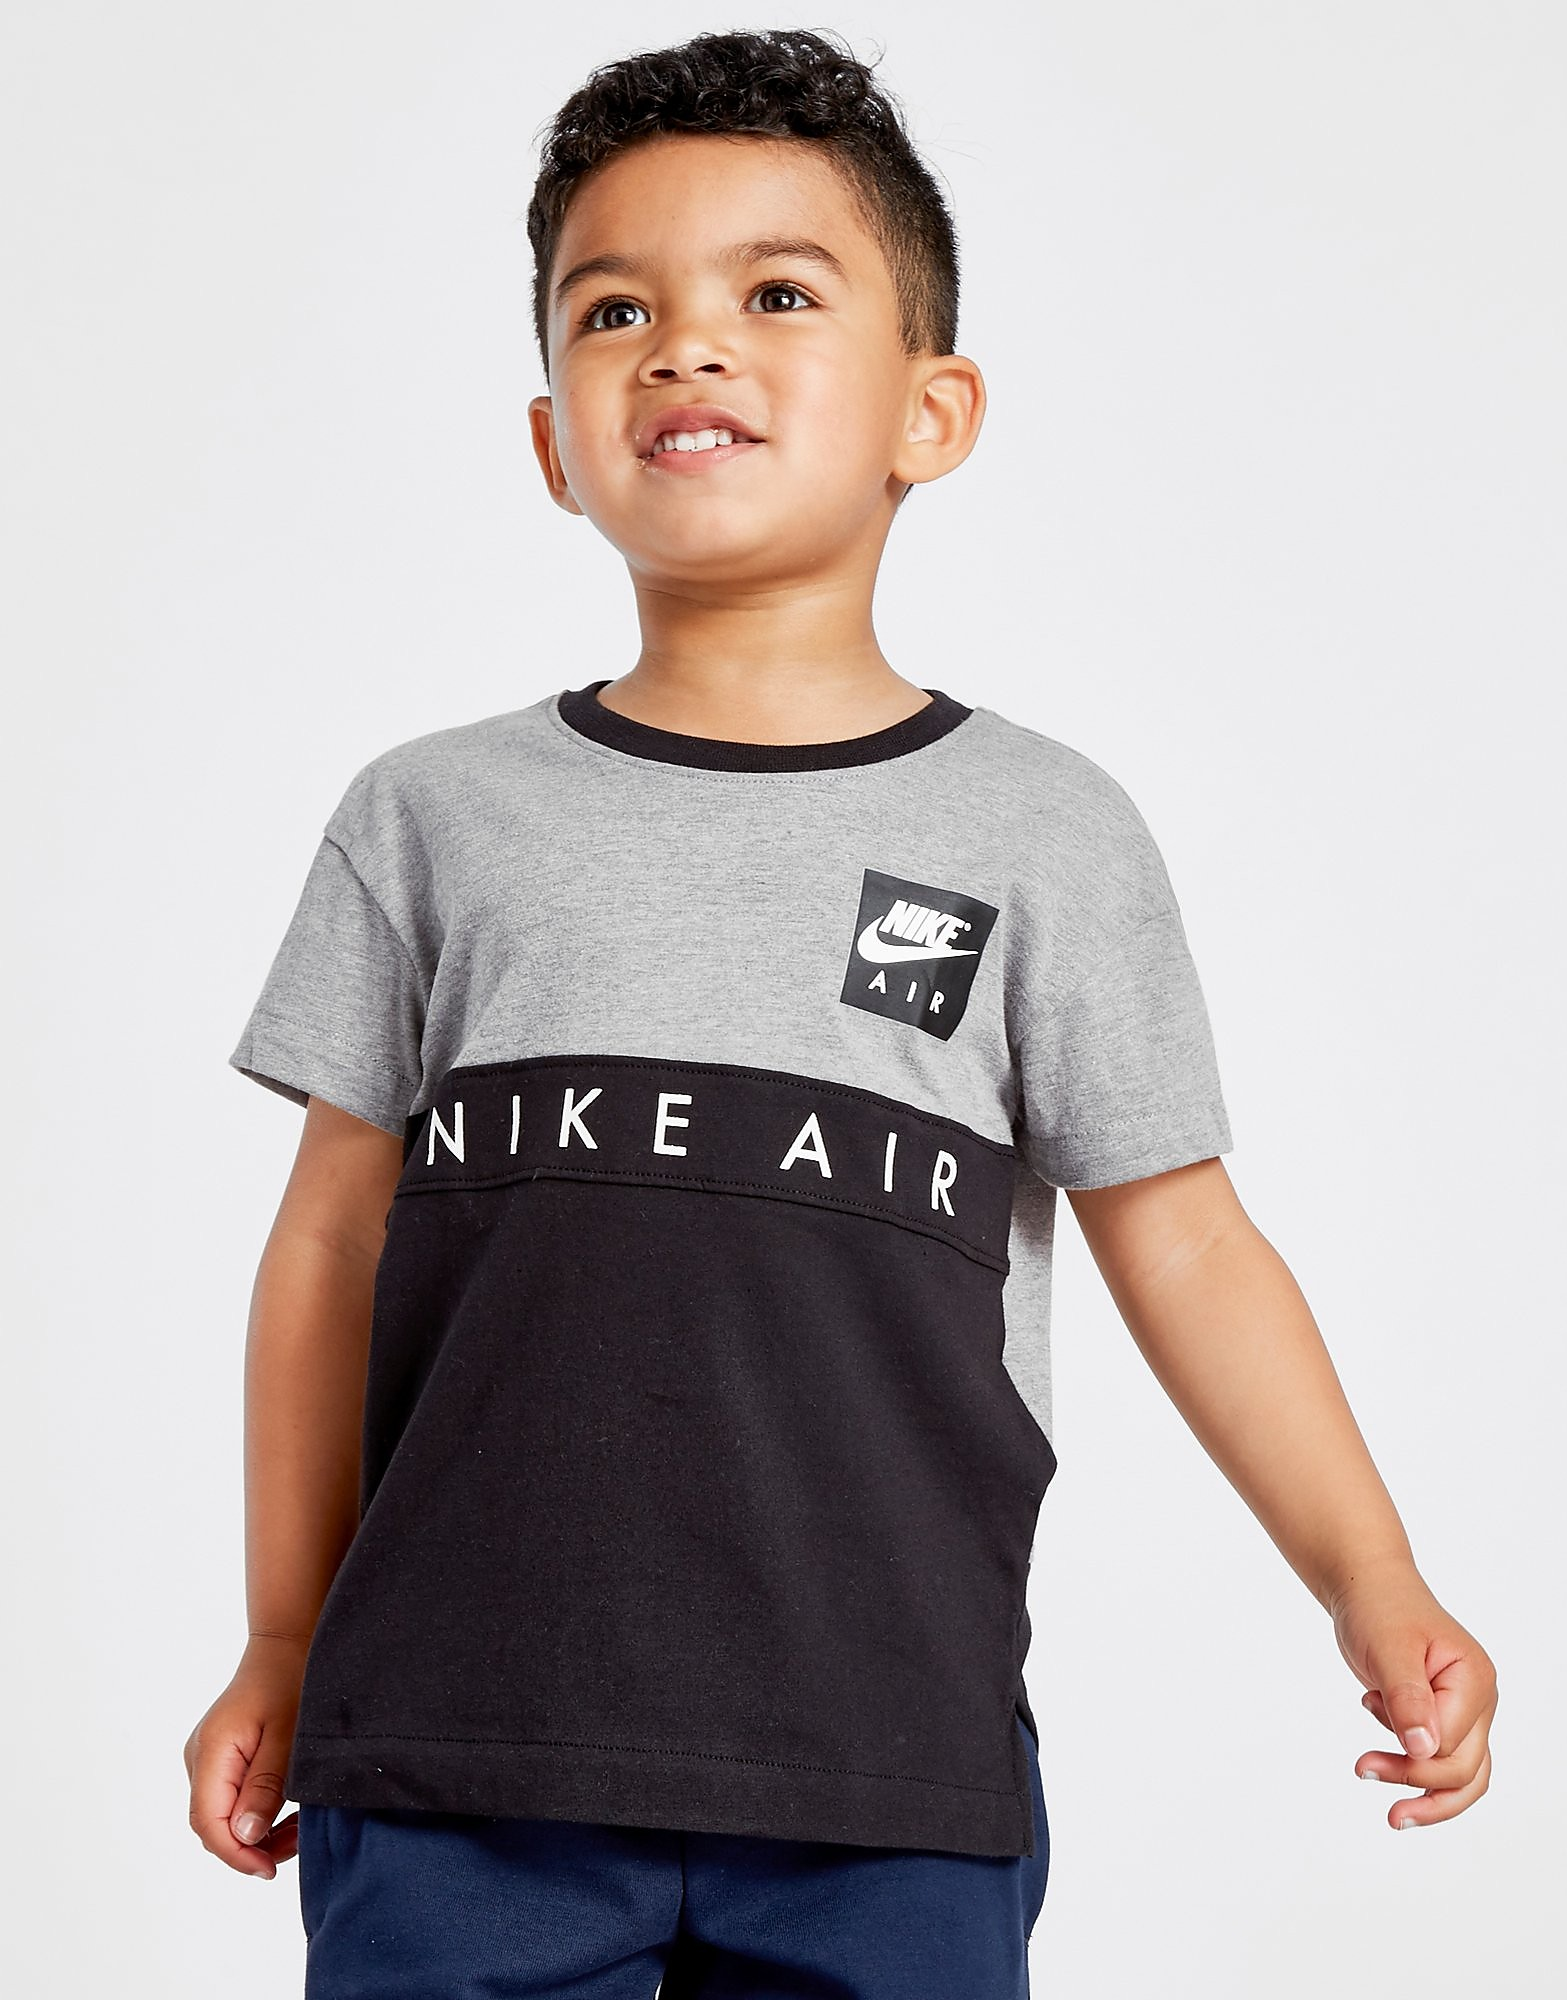 Nike Air Colourblock T-Shirt Children